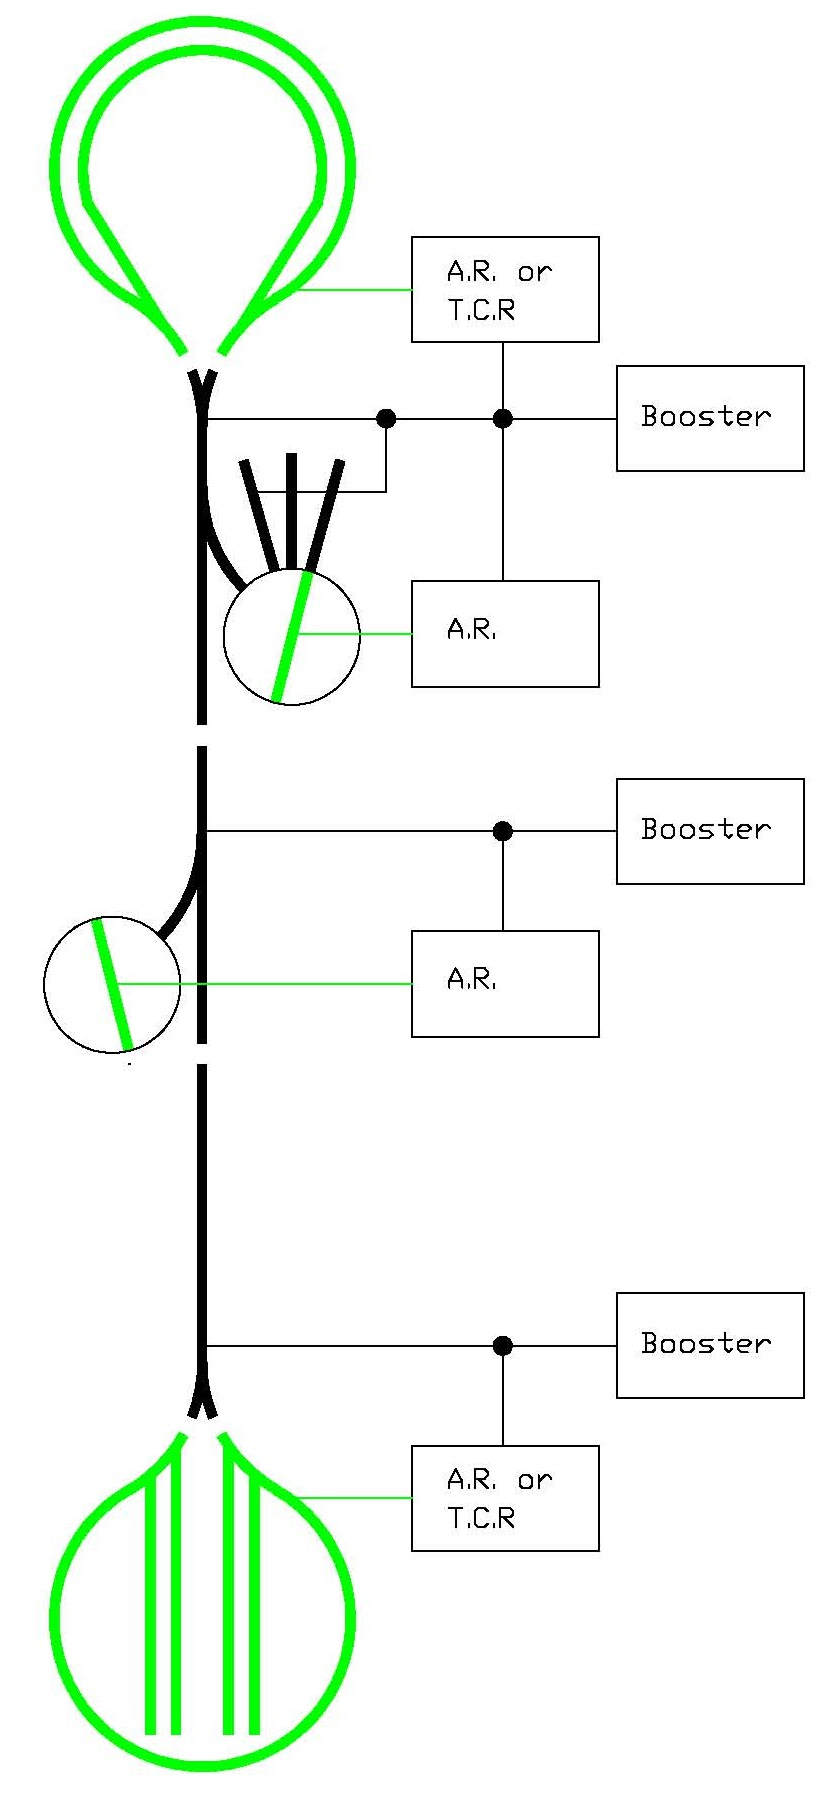 Atlas Ho Turntable Wiring Diagram Library Above Is A Simplified Of My Layout